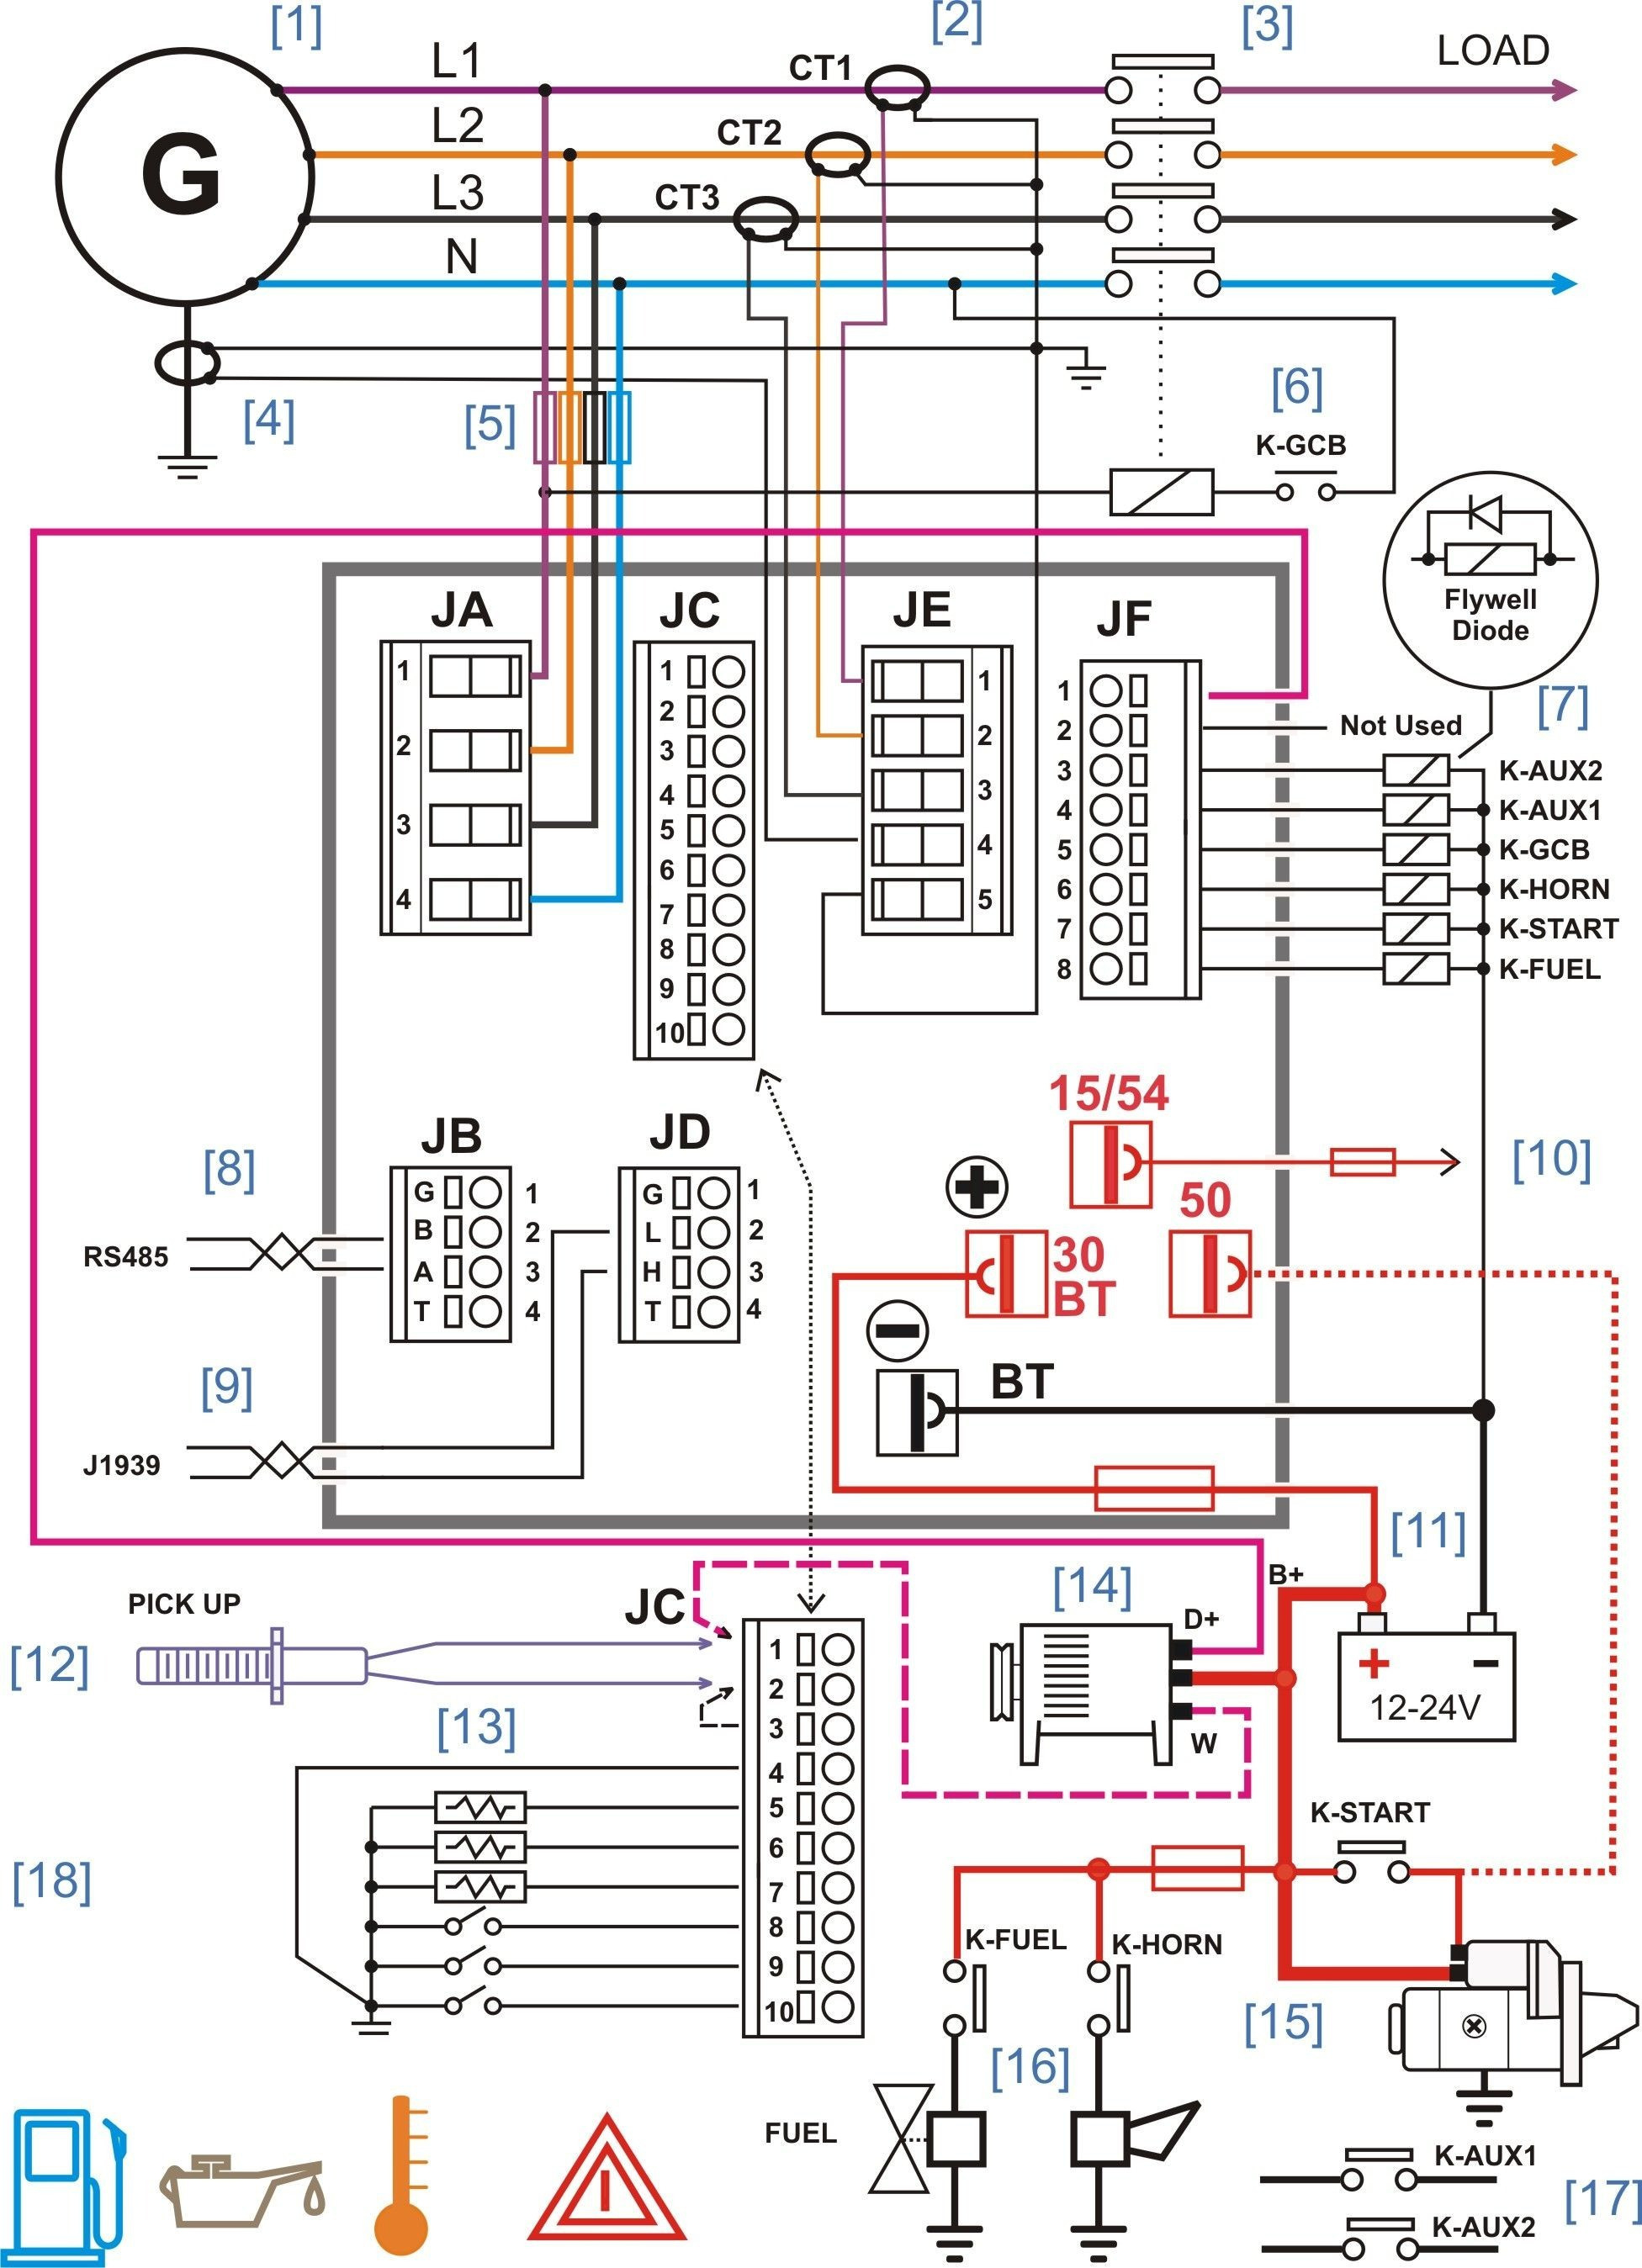 best wiring diagram software Download-Circuit Diagram Drawing software Free Fresh Diagram Creator Free Best Circuit Diagram Creator New Boss Od 17-n